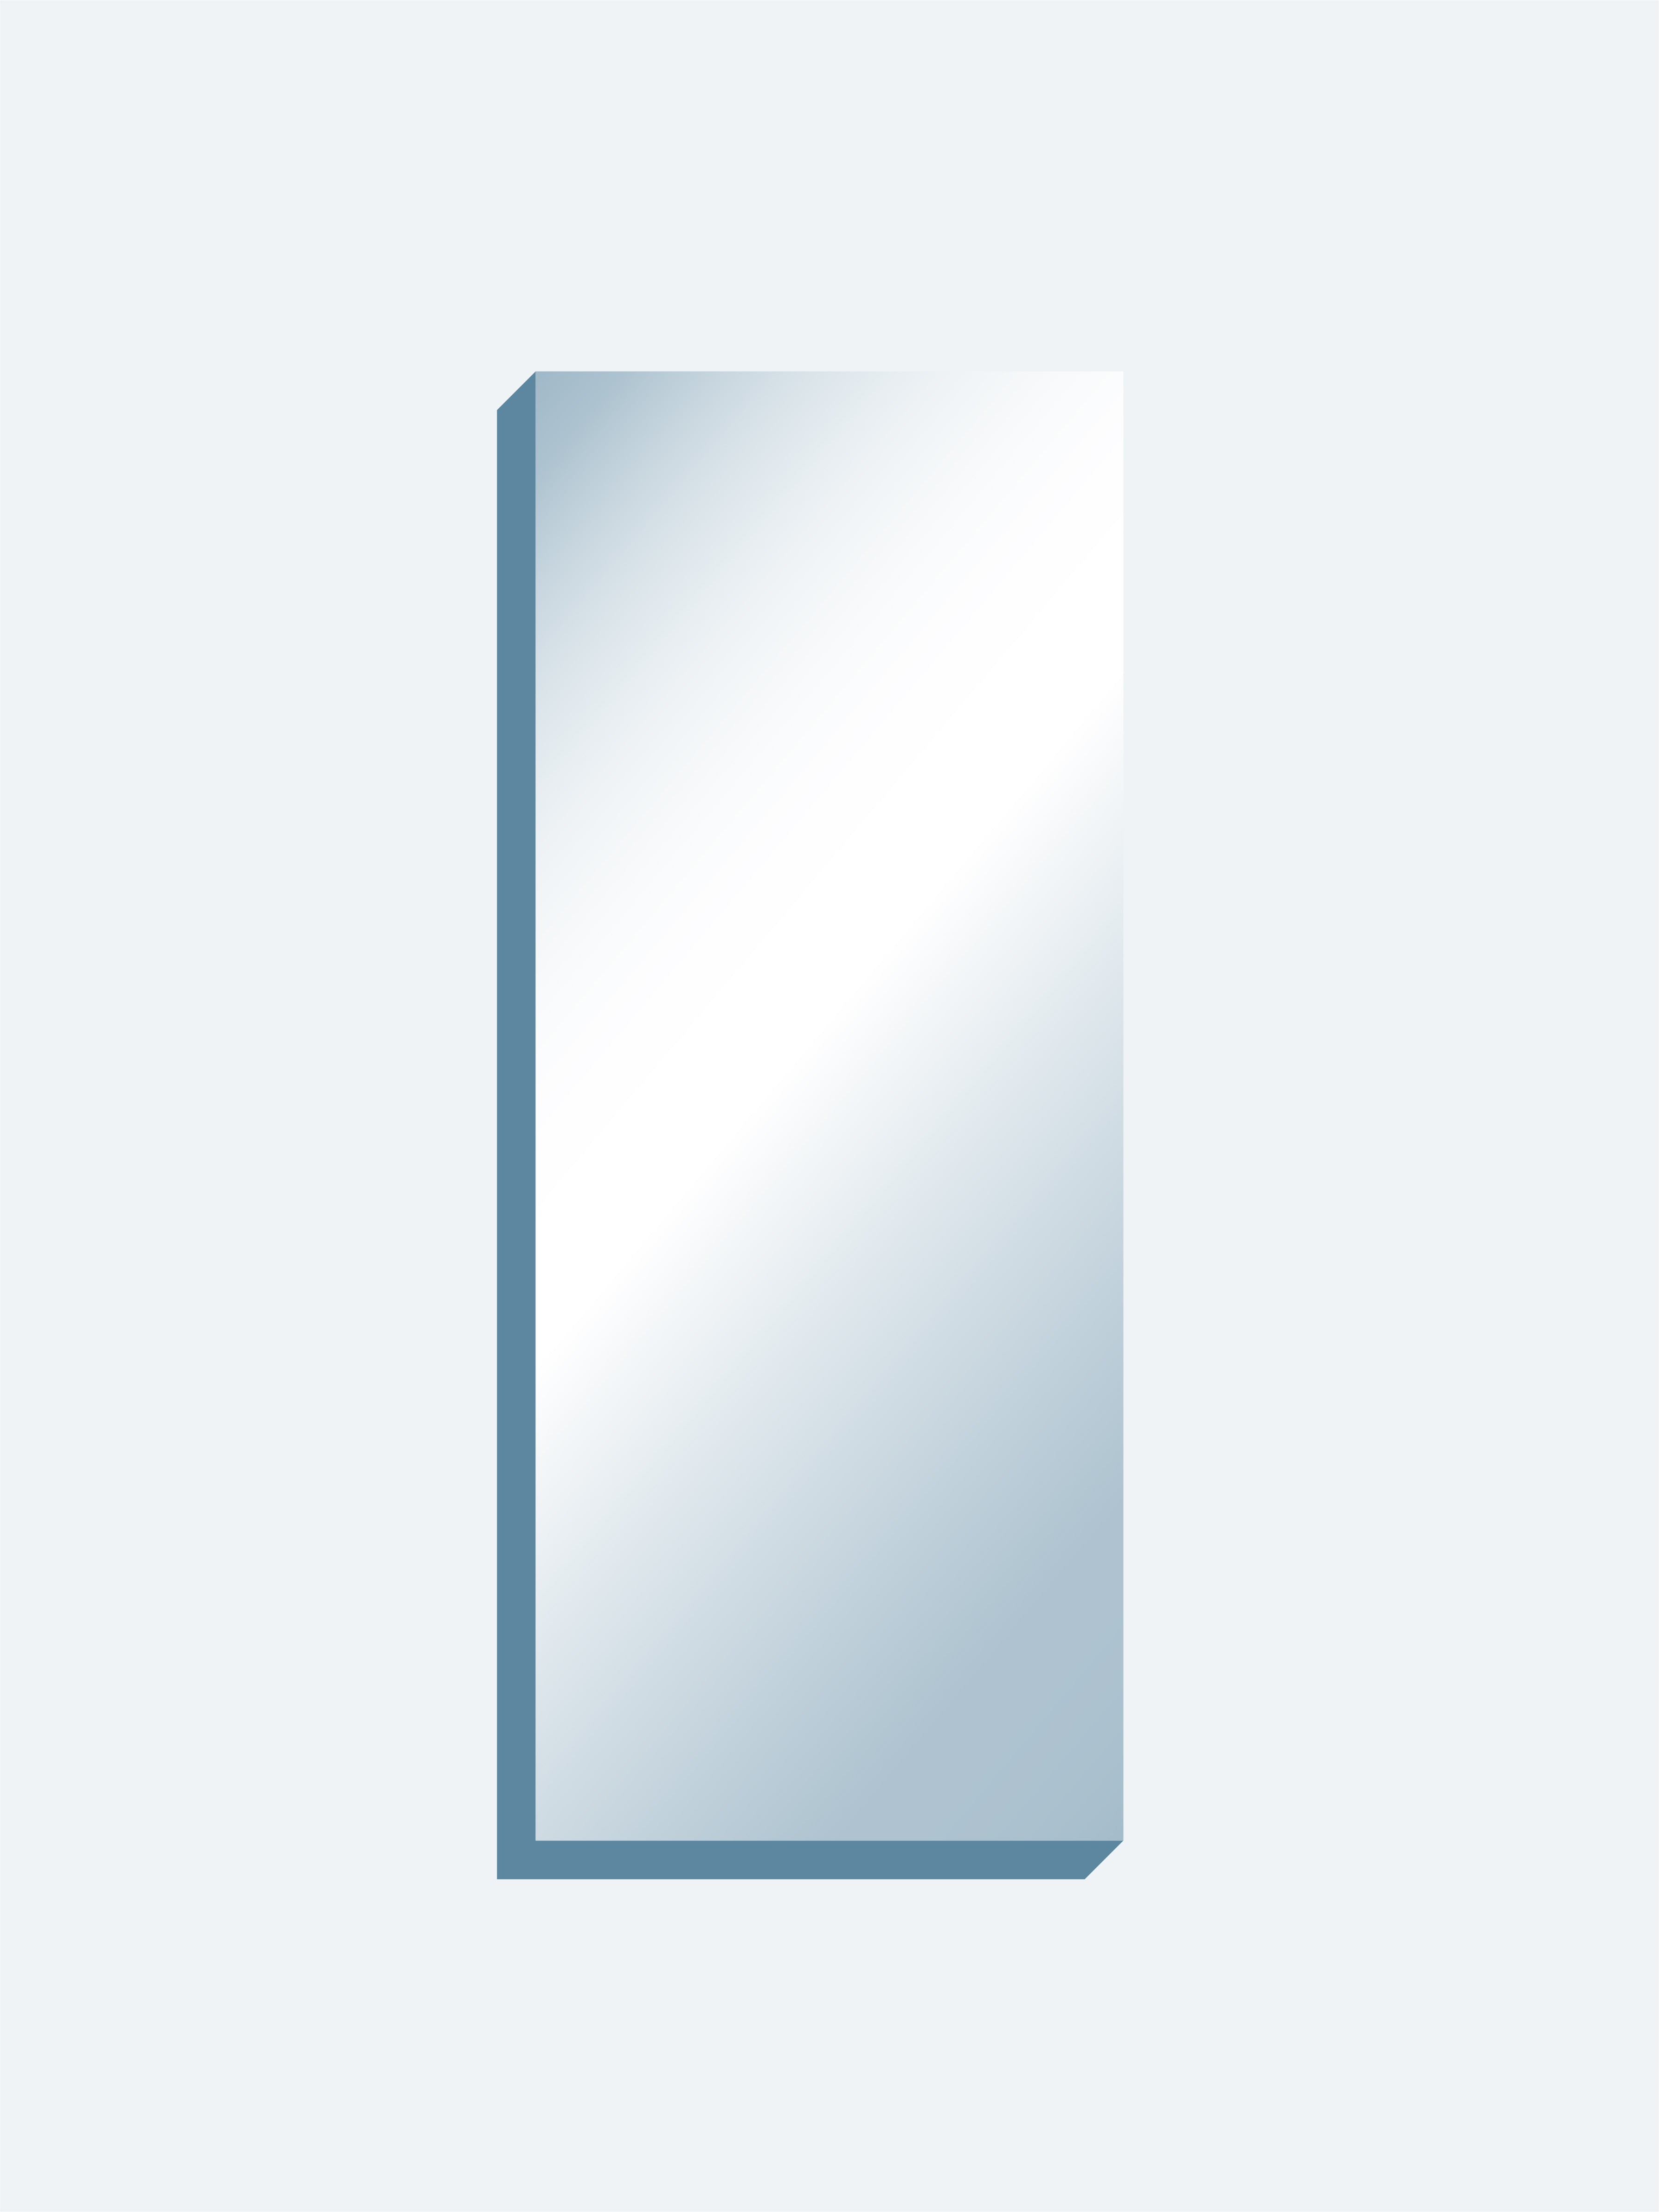 "Optical Grade Mirror 72"" x 180"" x 1-7/16"" thick"